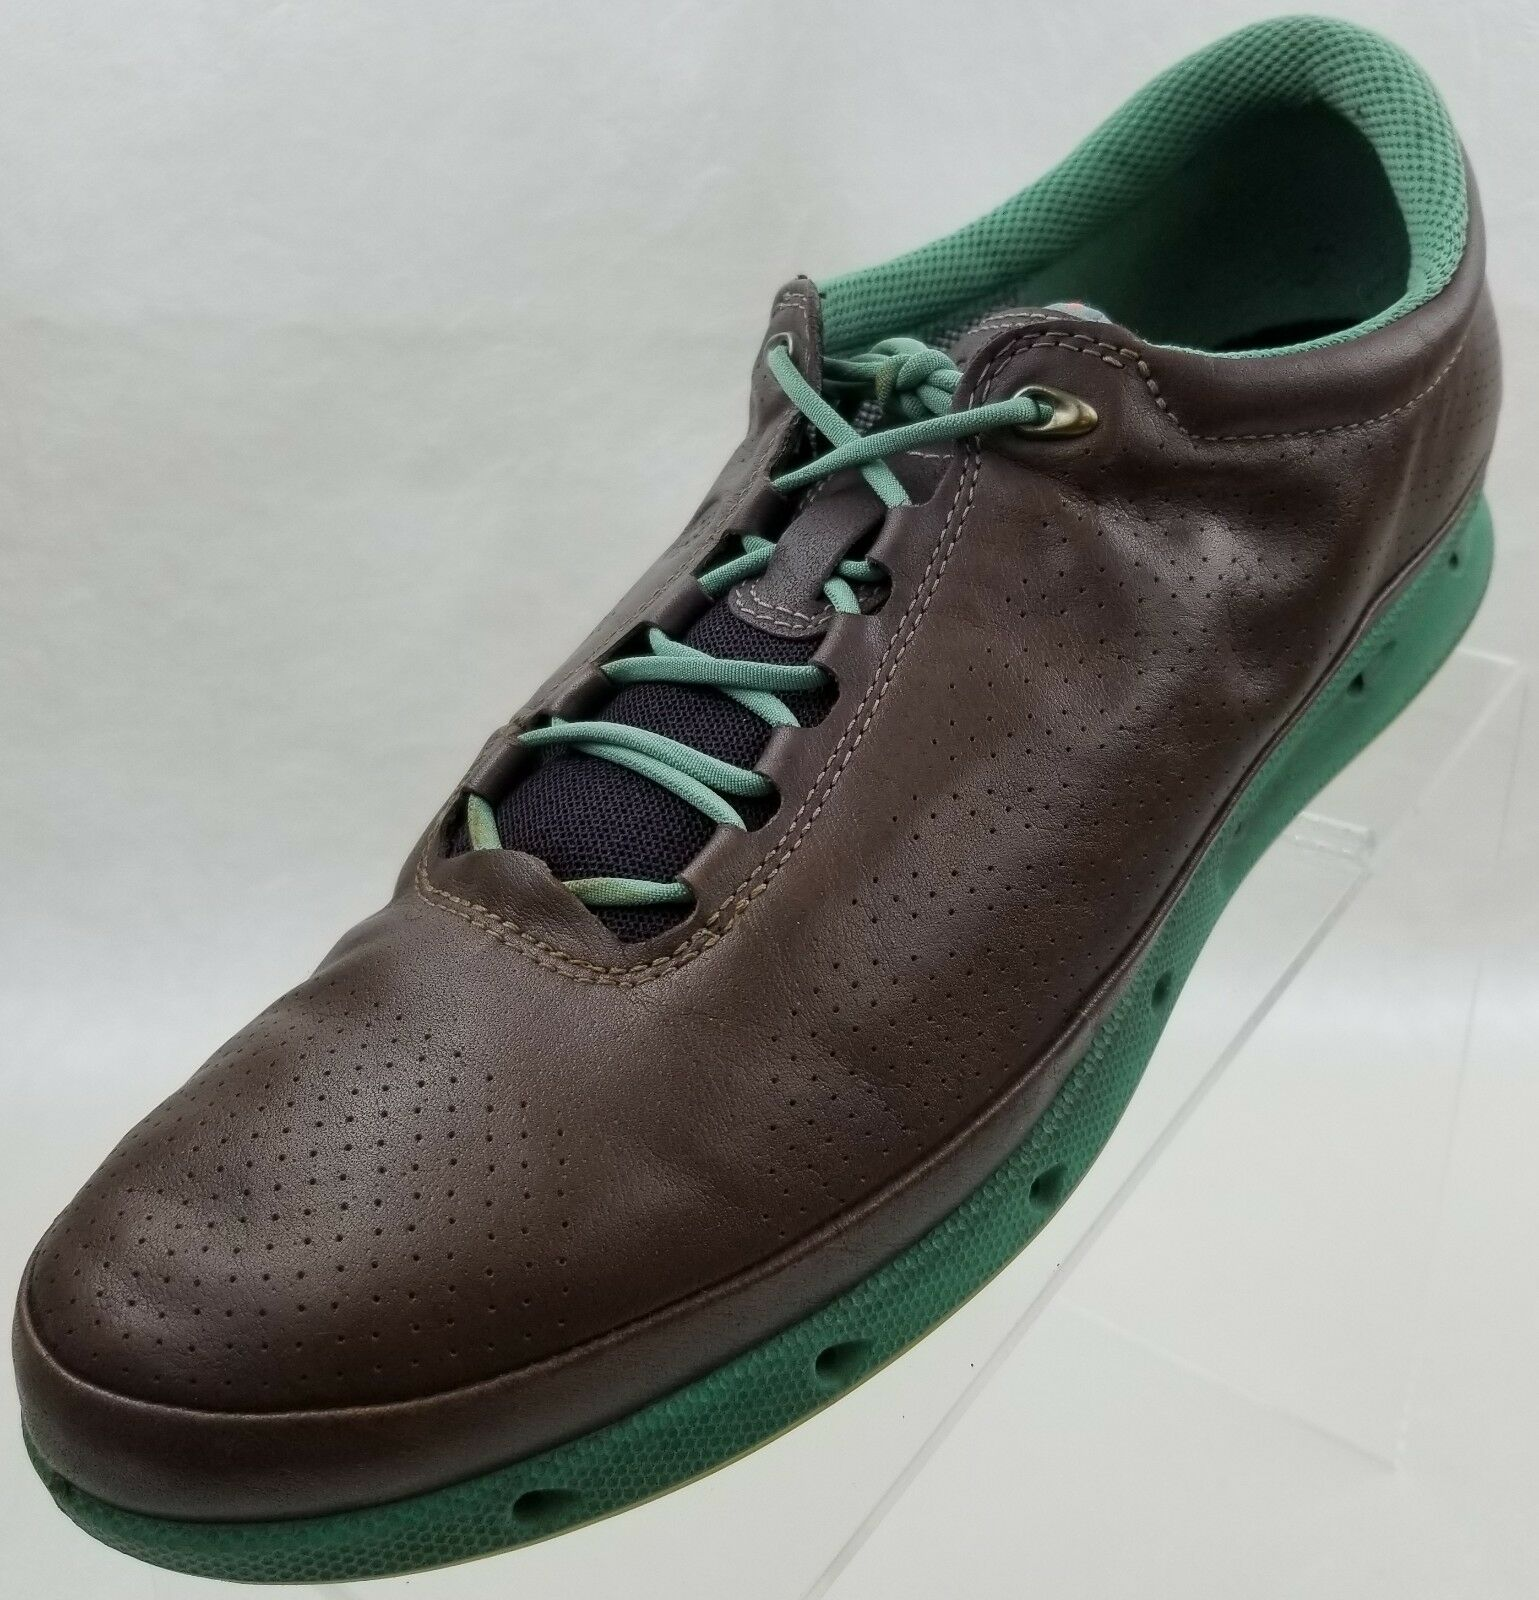 ECCO Sneakers Gore Tex Womens Brown Green Leather shoes Size US 10.5